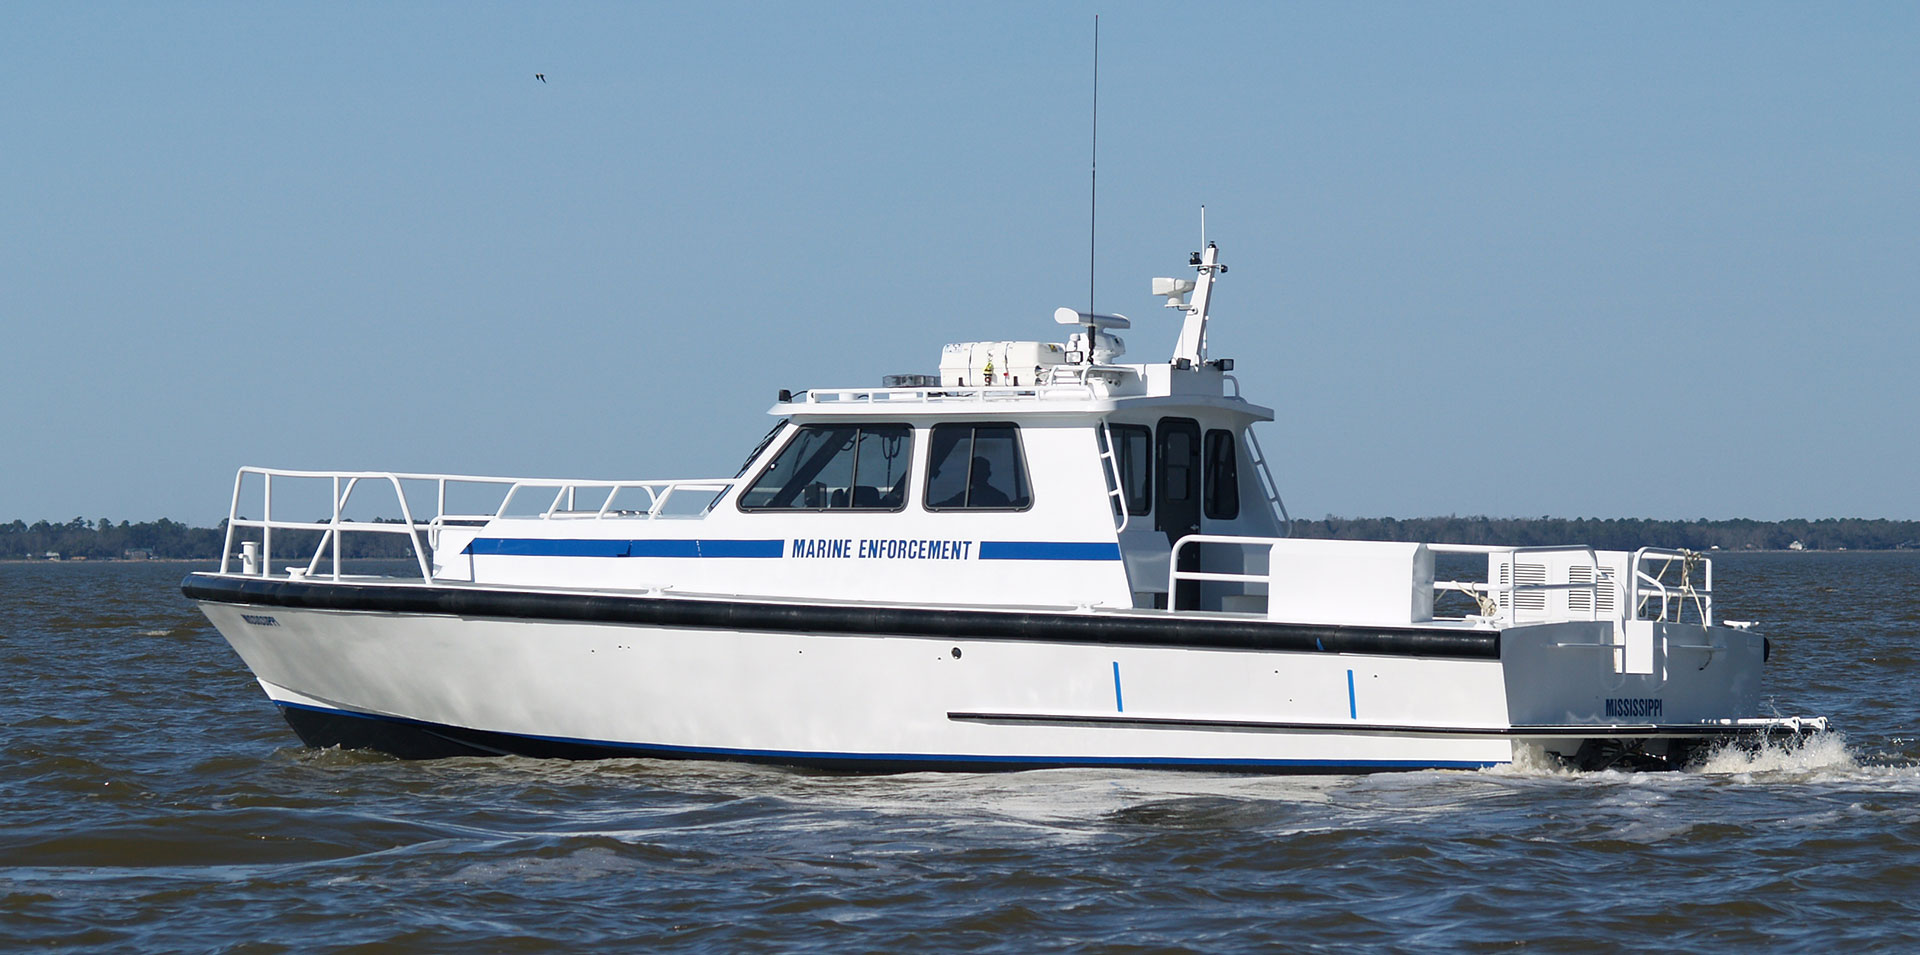 Silver Ships Endeavor series marine enforcement survey boat